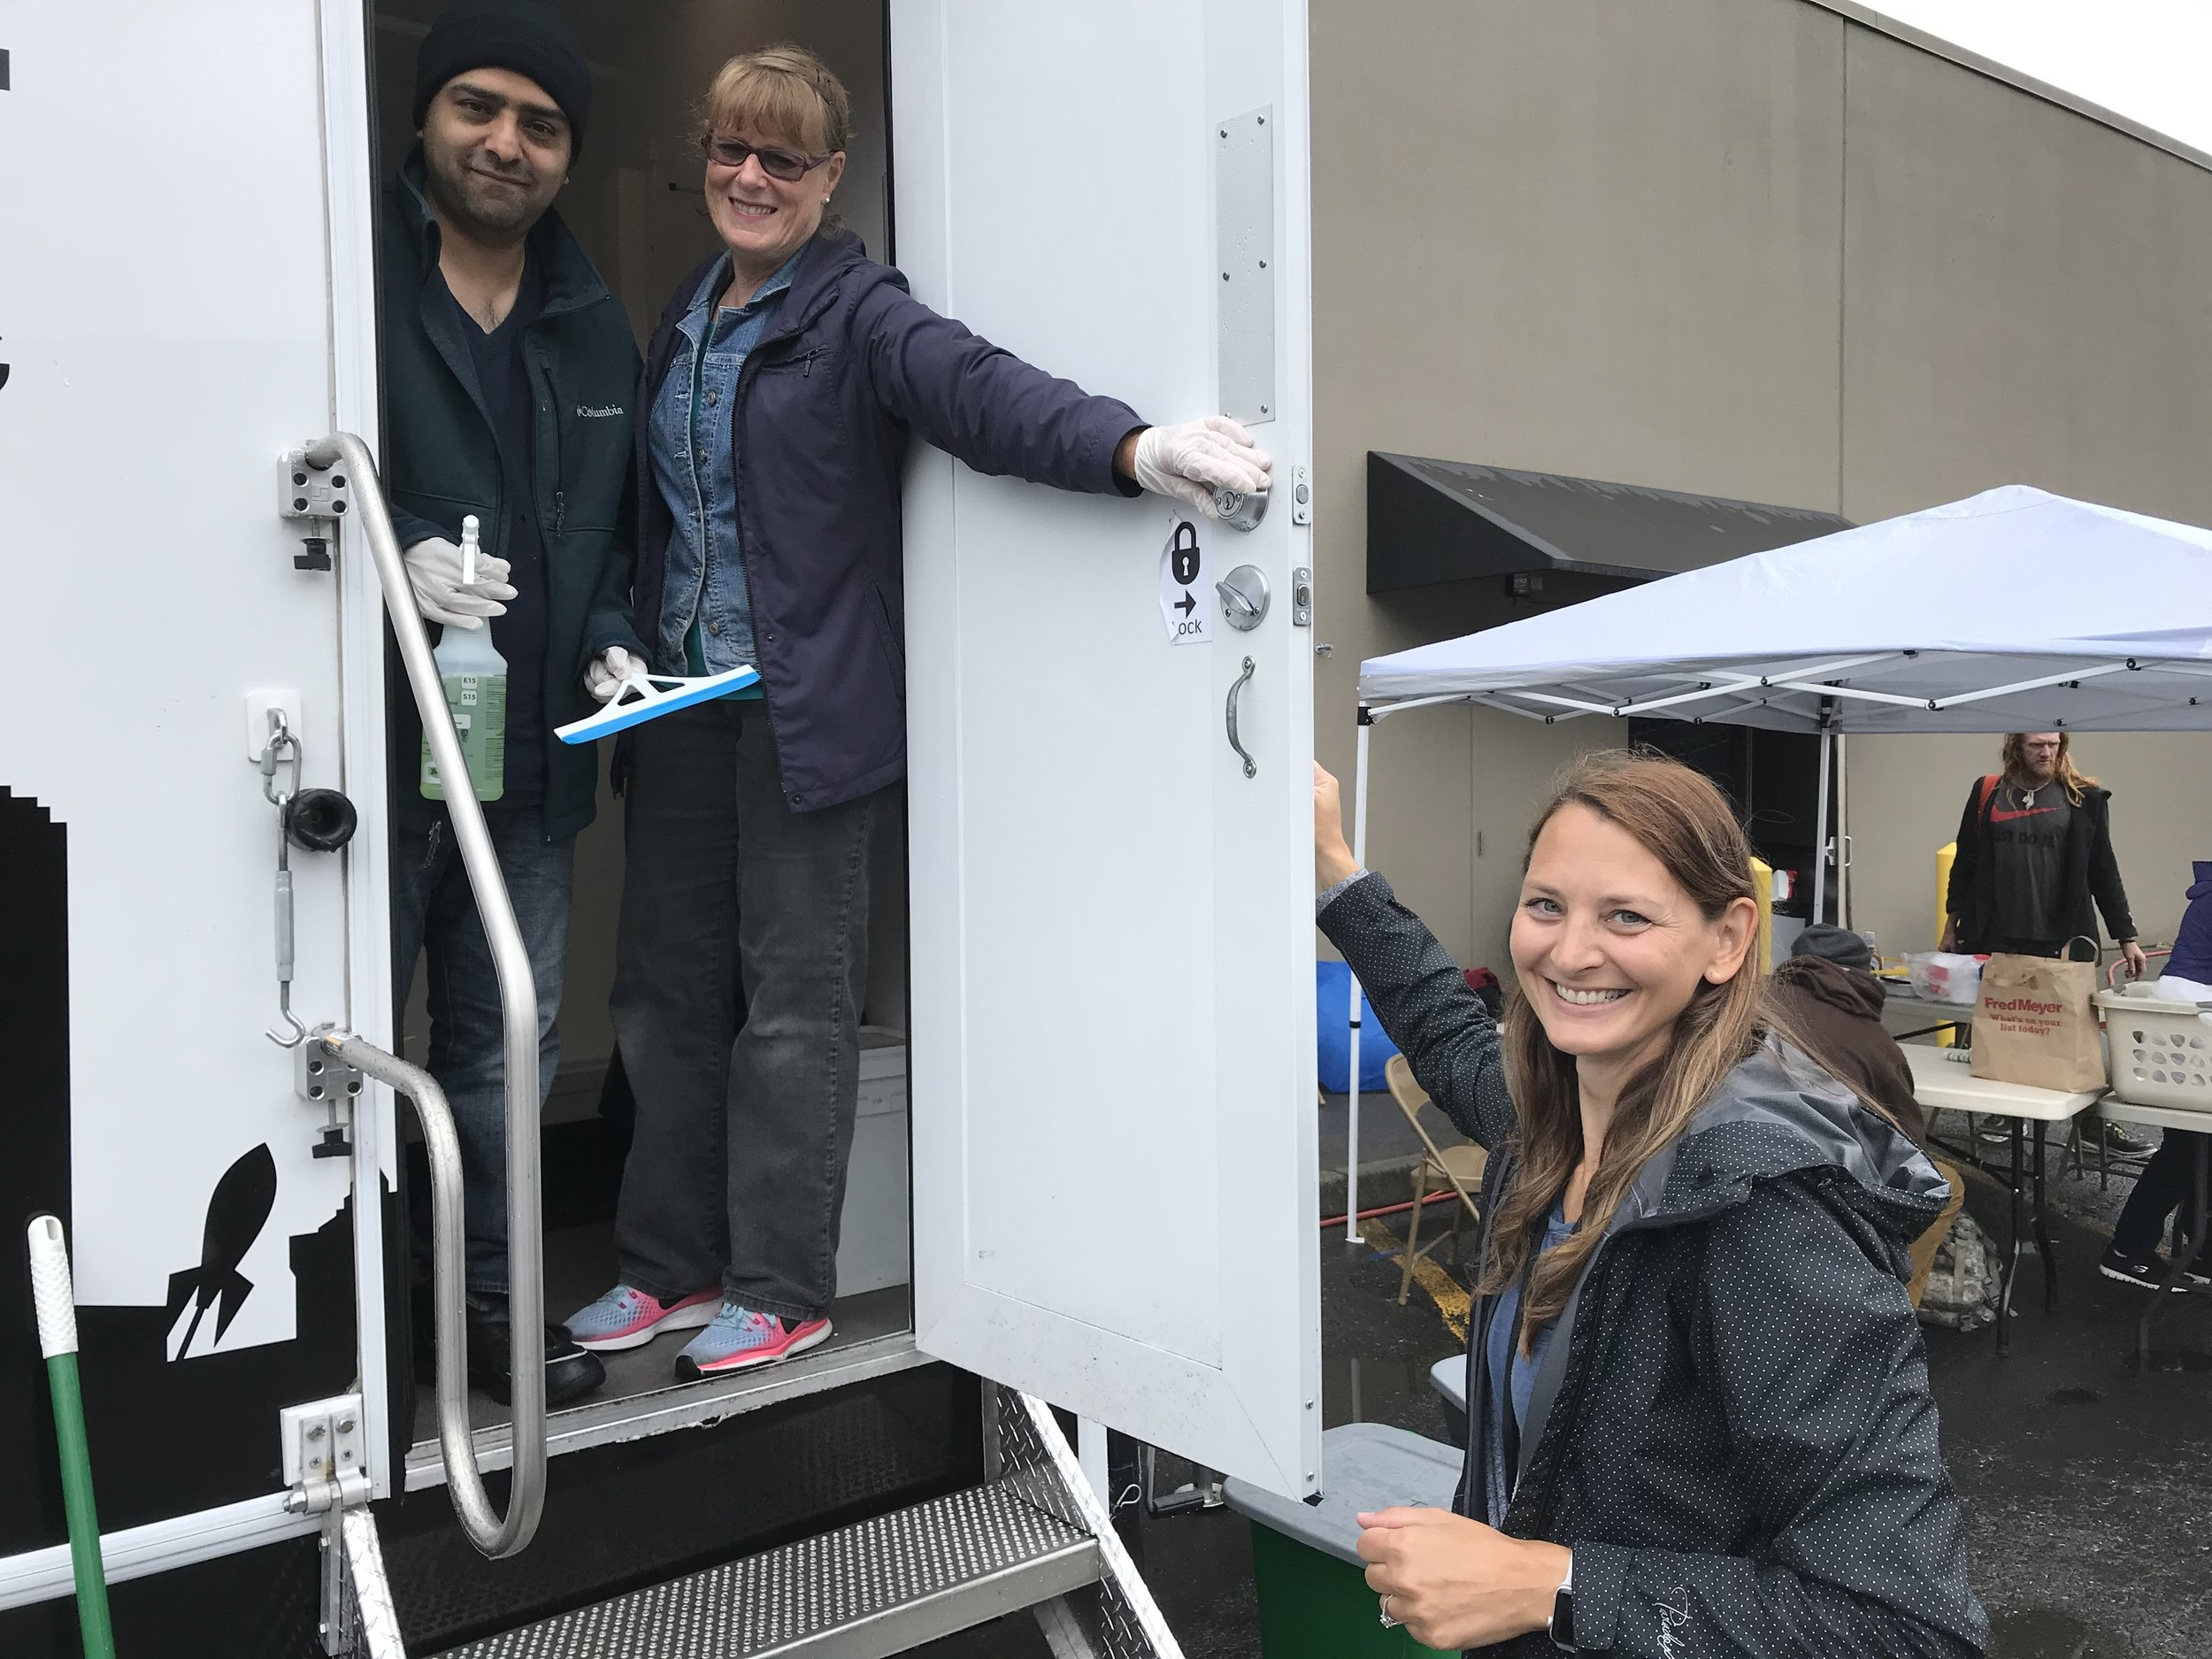 We added  13  new volunteers to the team that hosts the Lighthouse Mission's Shower Connect trailer each Friday at CTK. This allows us to continue this important ministry through the winter months!